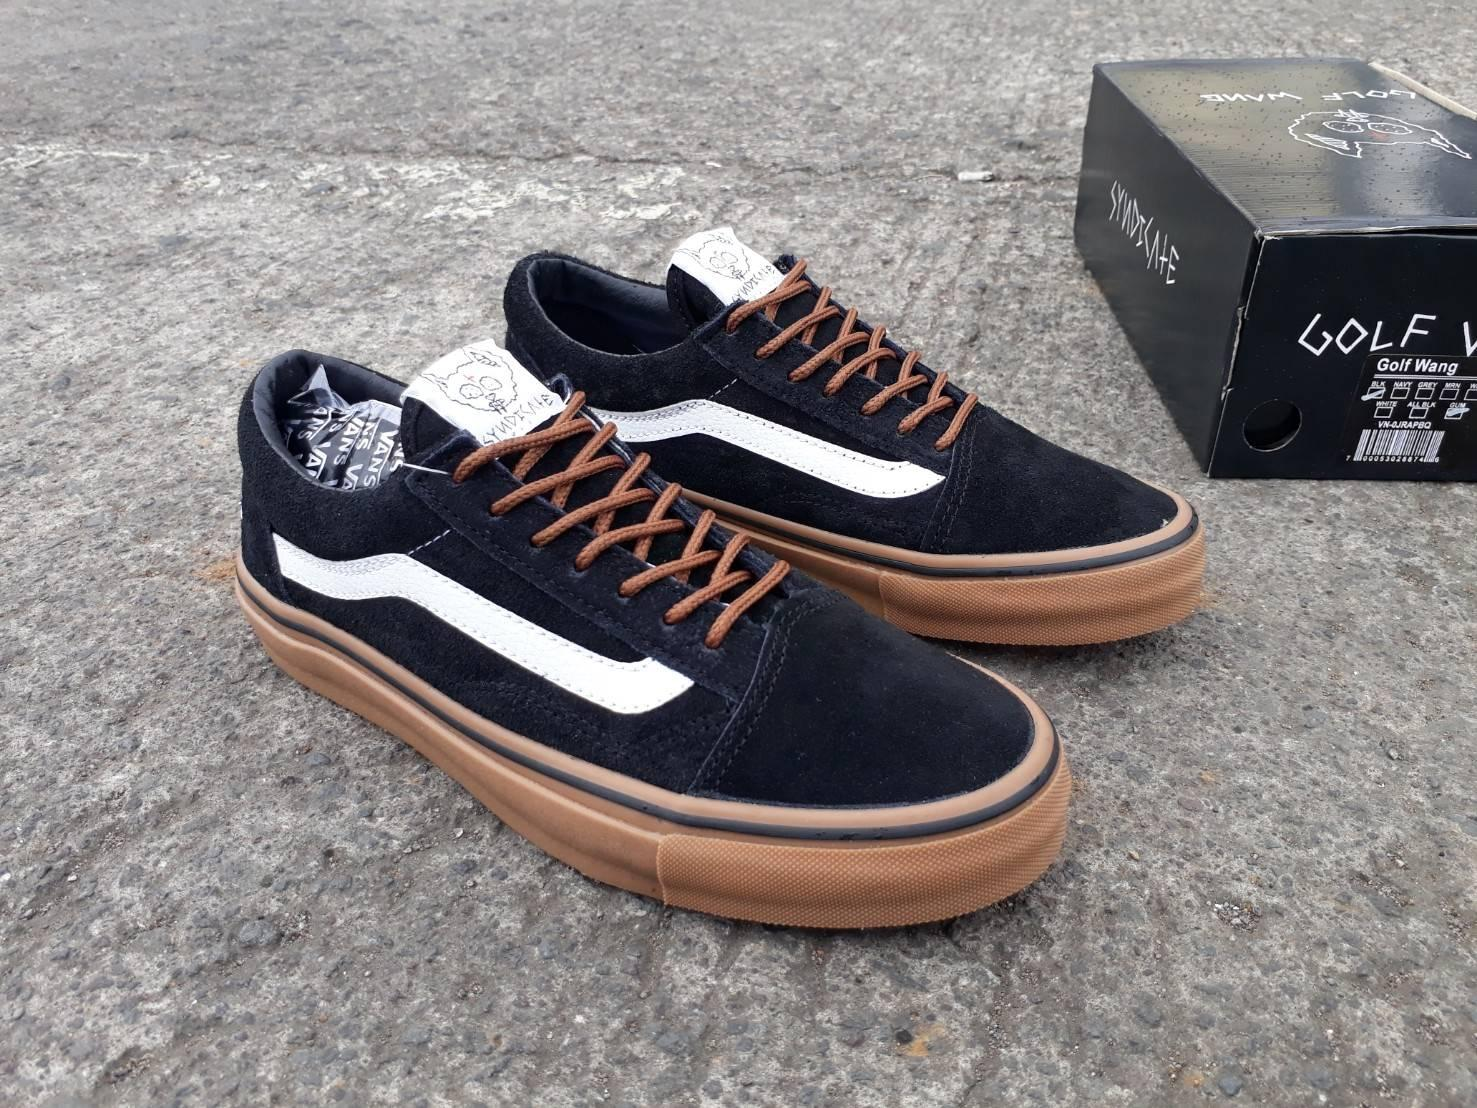 sepatu vans oldschool golf wang black gum wafle icc